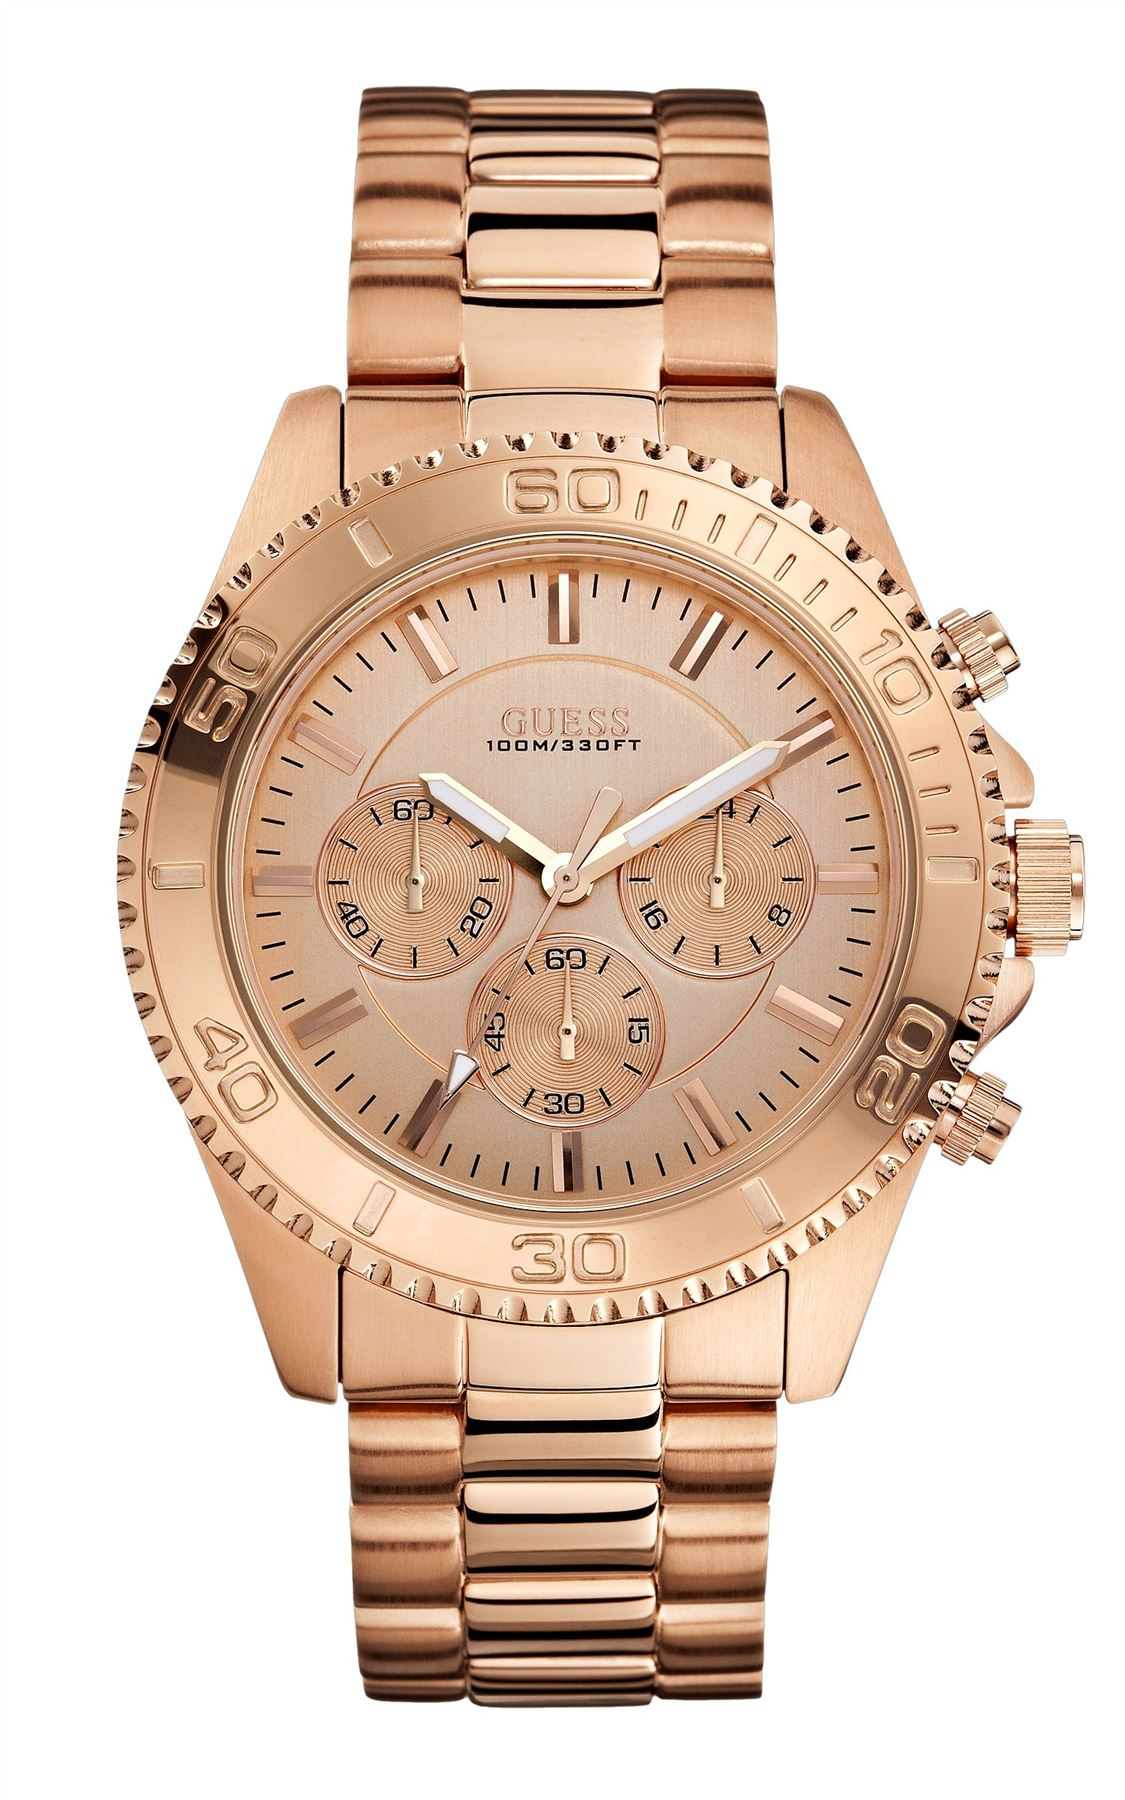 guess mens watch rrp £220 rose gold over £100 off w0170g4 image is loading guess mens watch rrp 220 rose gold over